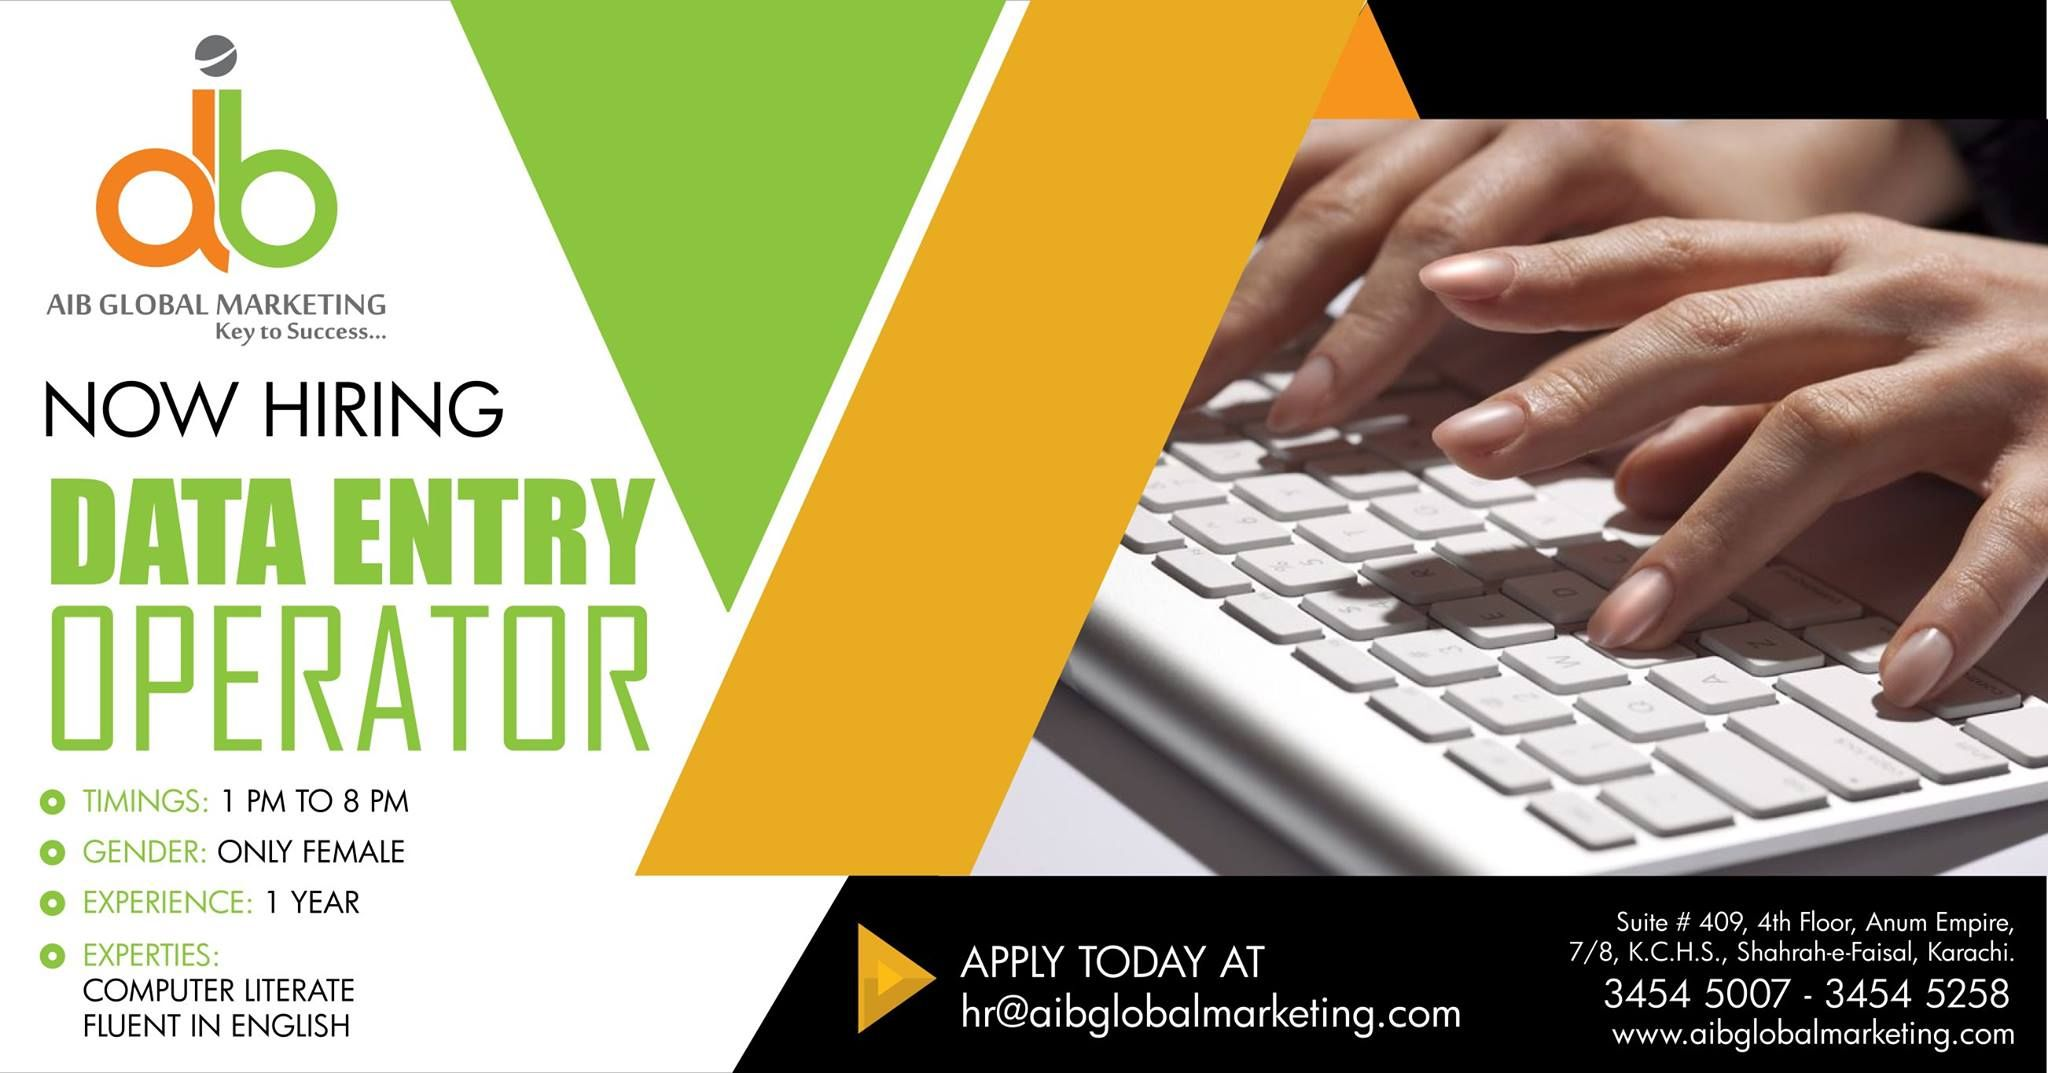 CAREER OPPORTUNITY | Position: Data Entry Operators